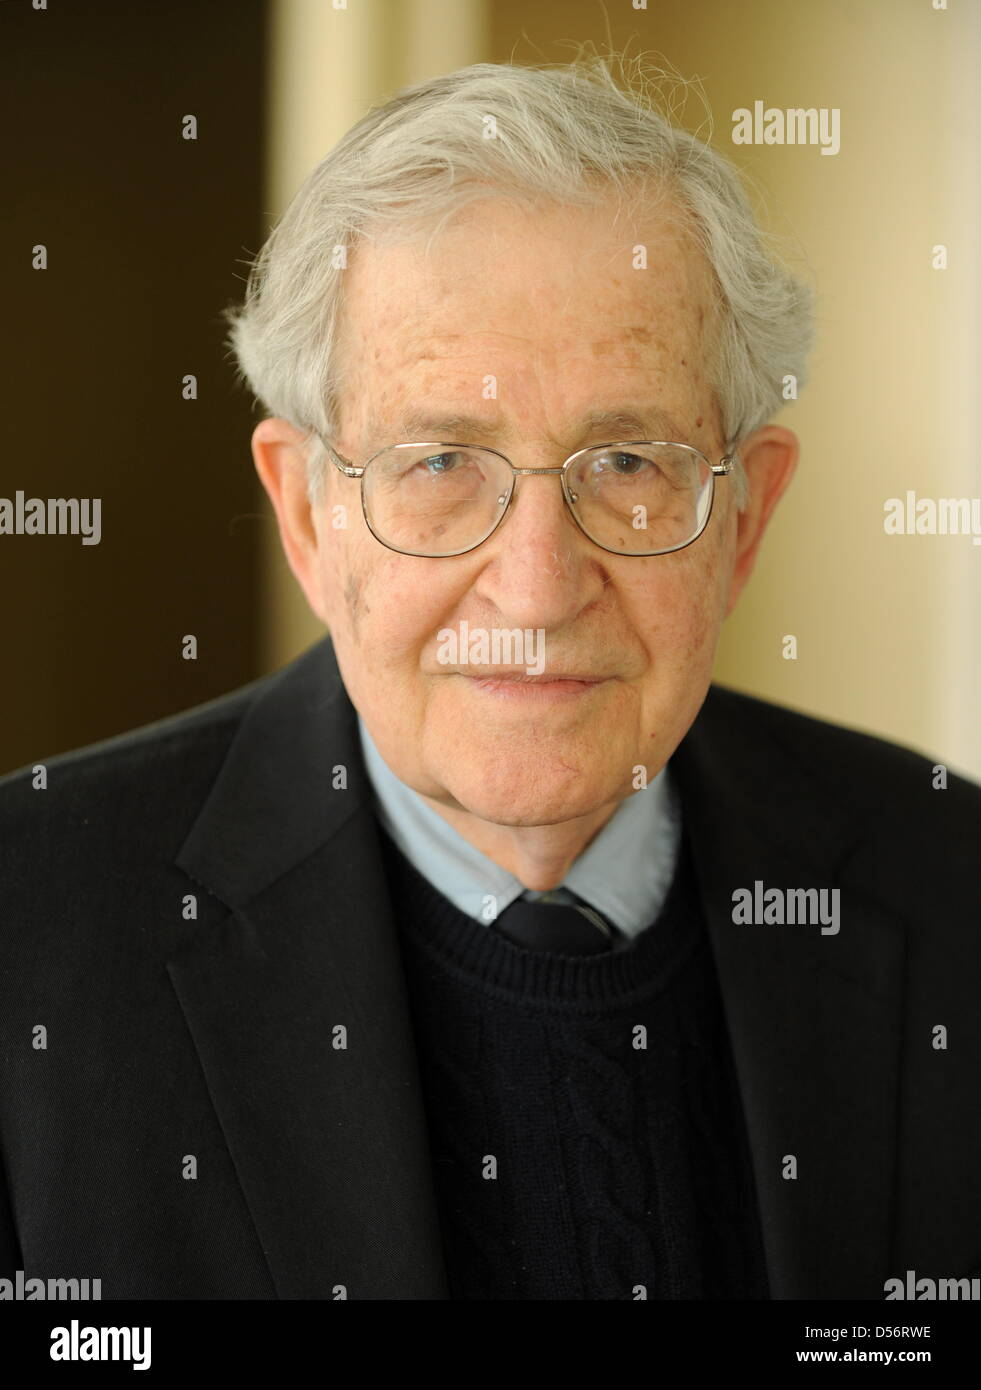 US linguist and philisopher Noam Chomsky pictured at a press conference in Stuttgart, Germany, 23 March 2010. International - Stock Image